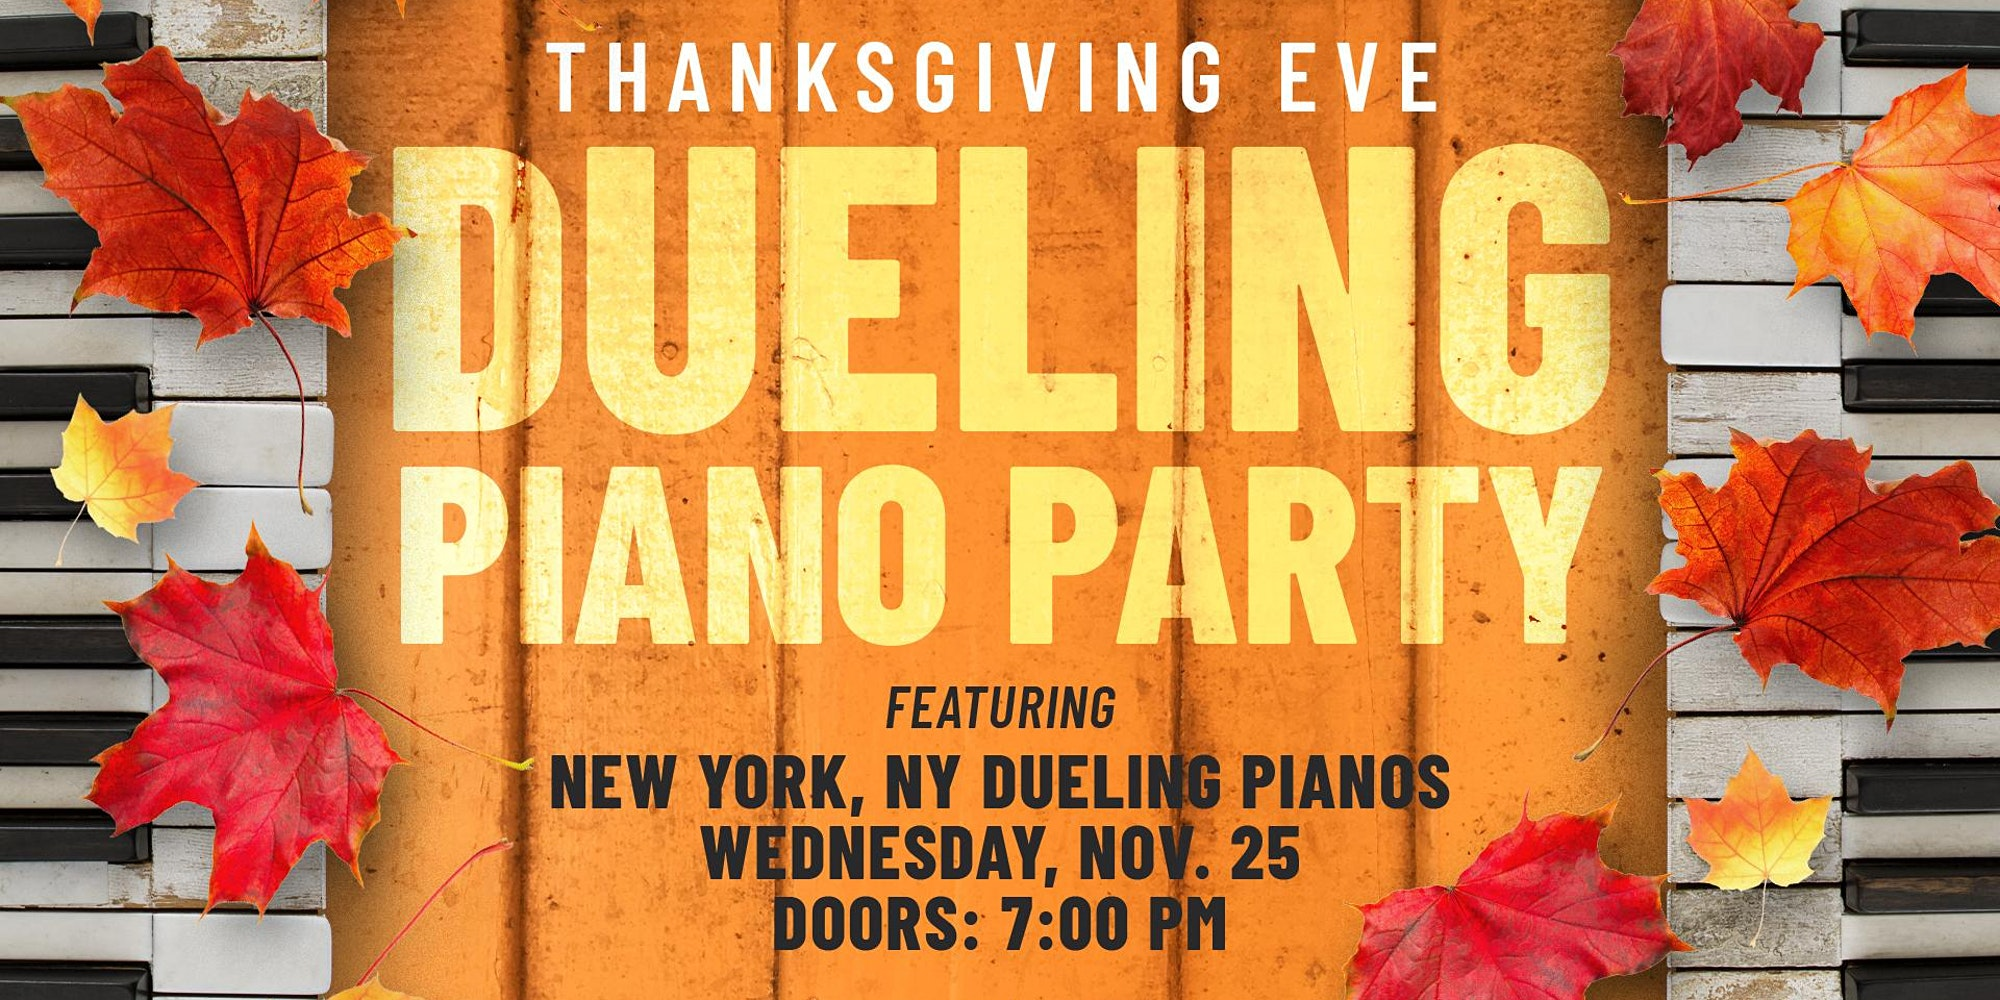 Promo image of Thanksgiving Eve Dueling Piano Party